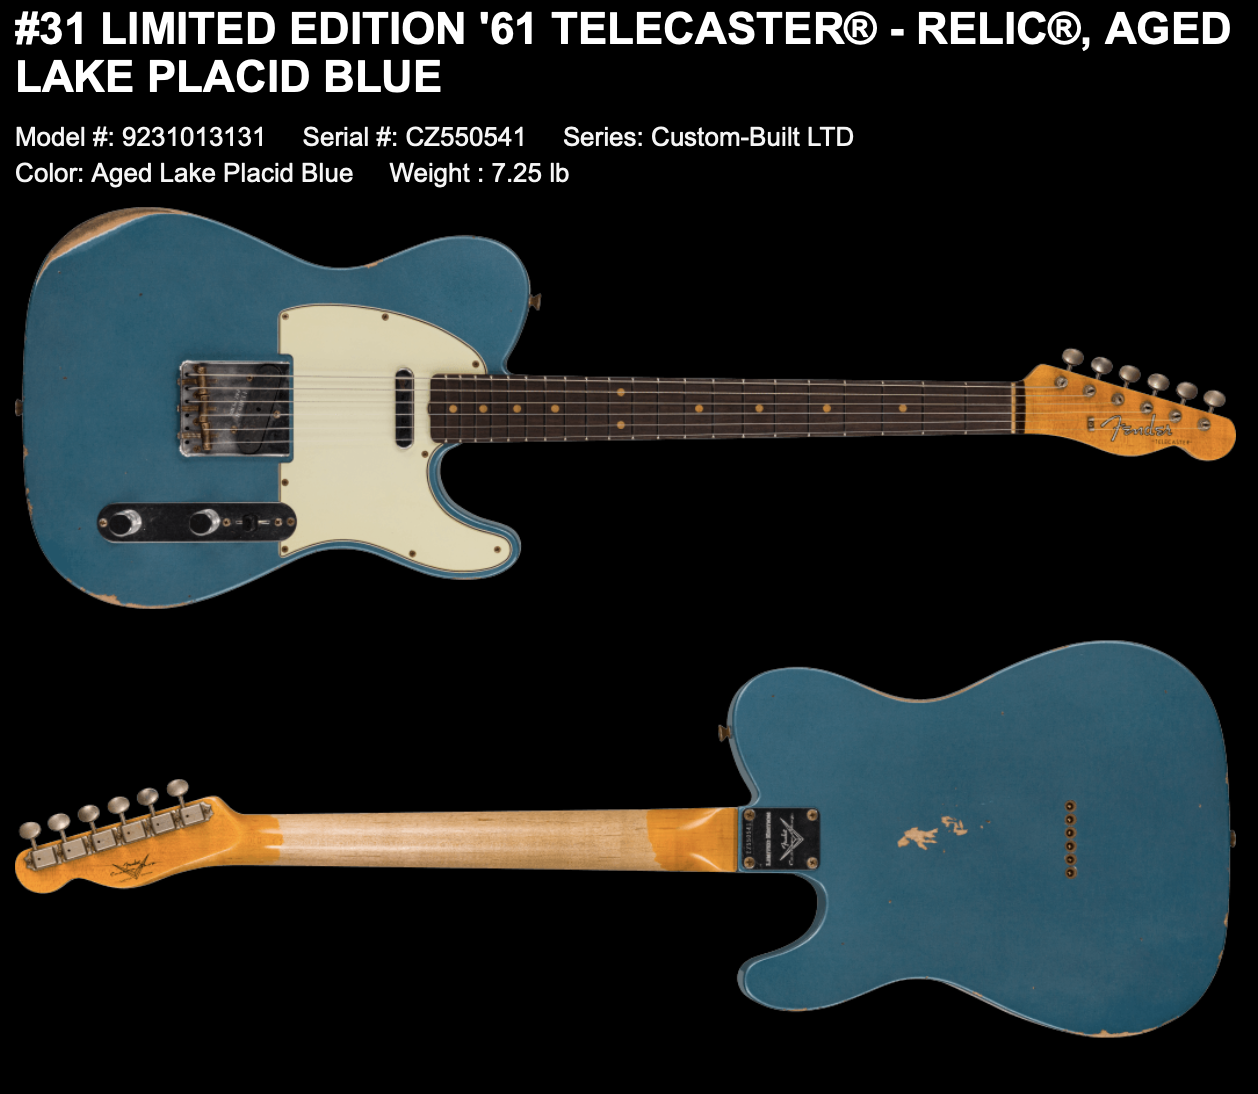 (PRE-ORDER) FENDER CUSTOM SHOP LIMITED EDITION '61 TELECASTER RELIC IN AGED LAKE PLACID BLUE